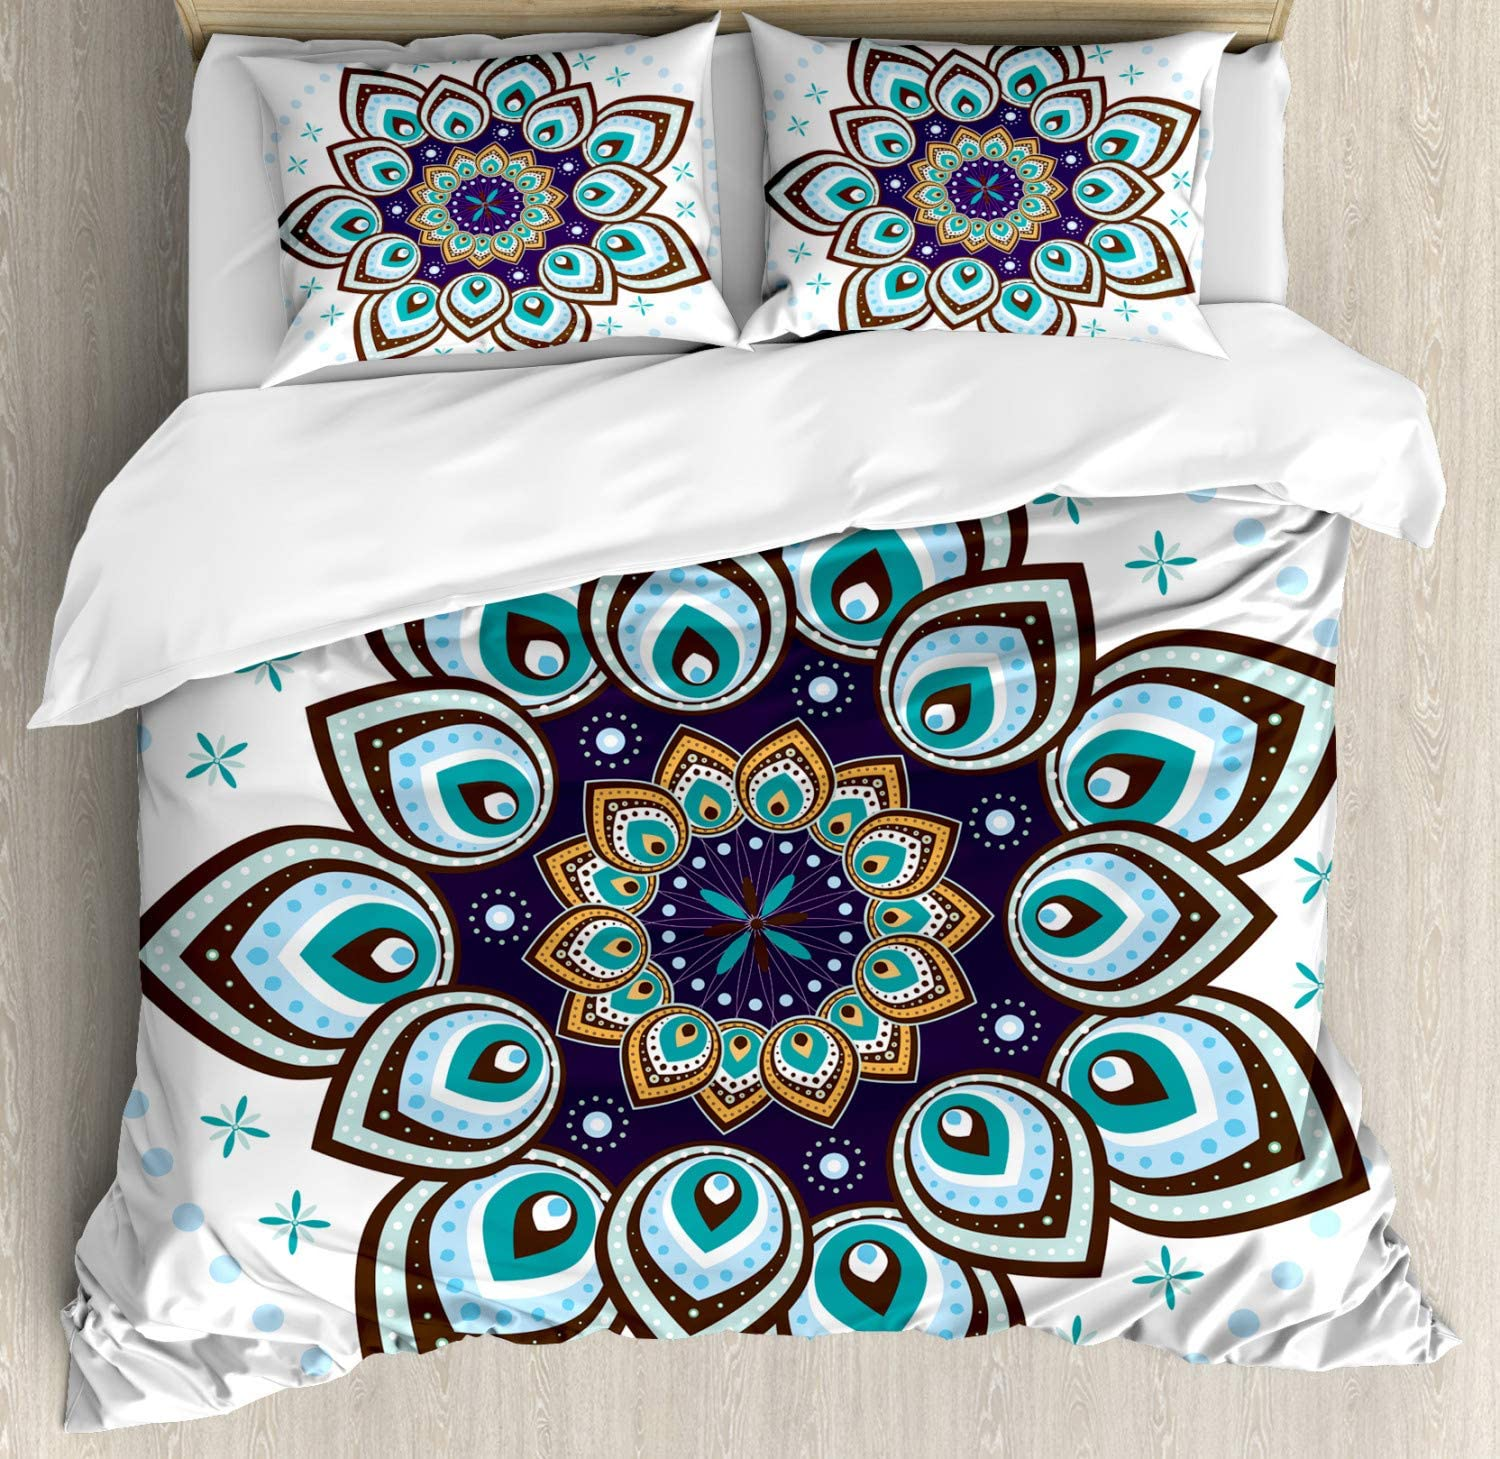 Ambesonne Skull Duvet Cover Set Decorative 2 Piece Bedding Set with 1 Pillow Sham Twin Size Punk Rocker Skeleton Boy on a Skateboard Skiing with Abstract Background Grey Cream